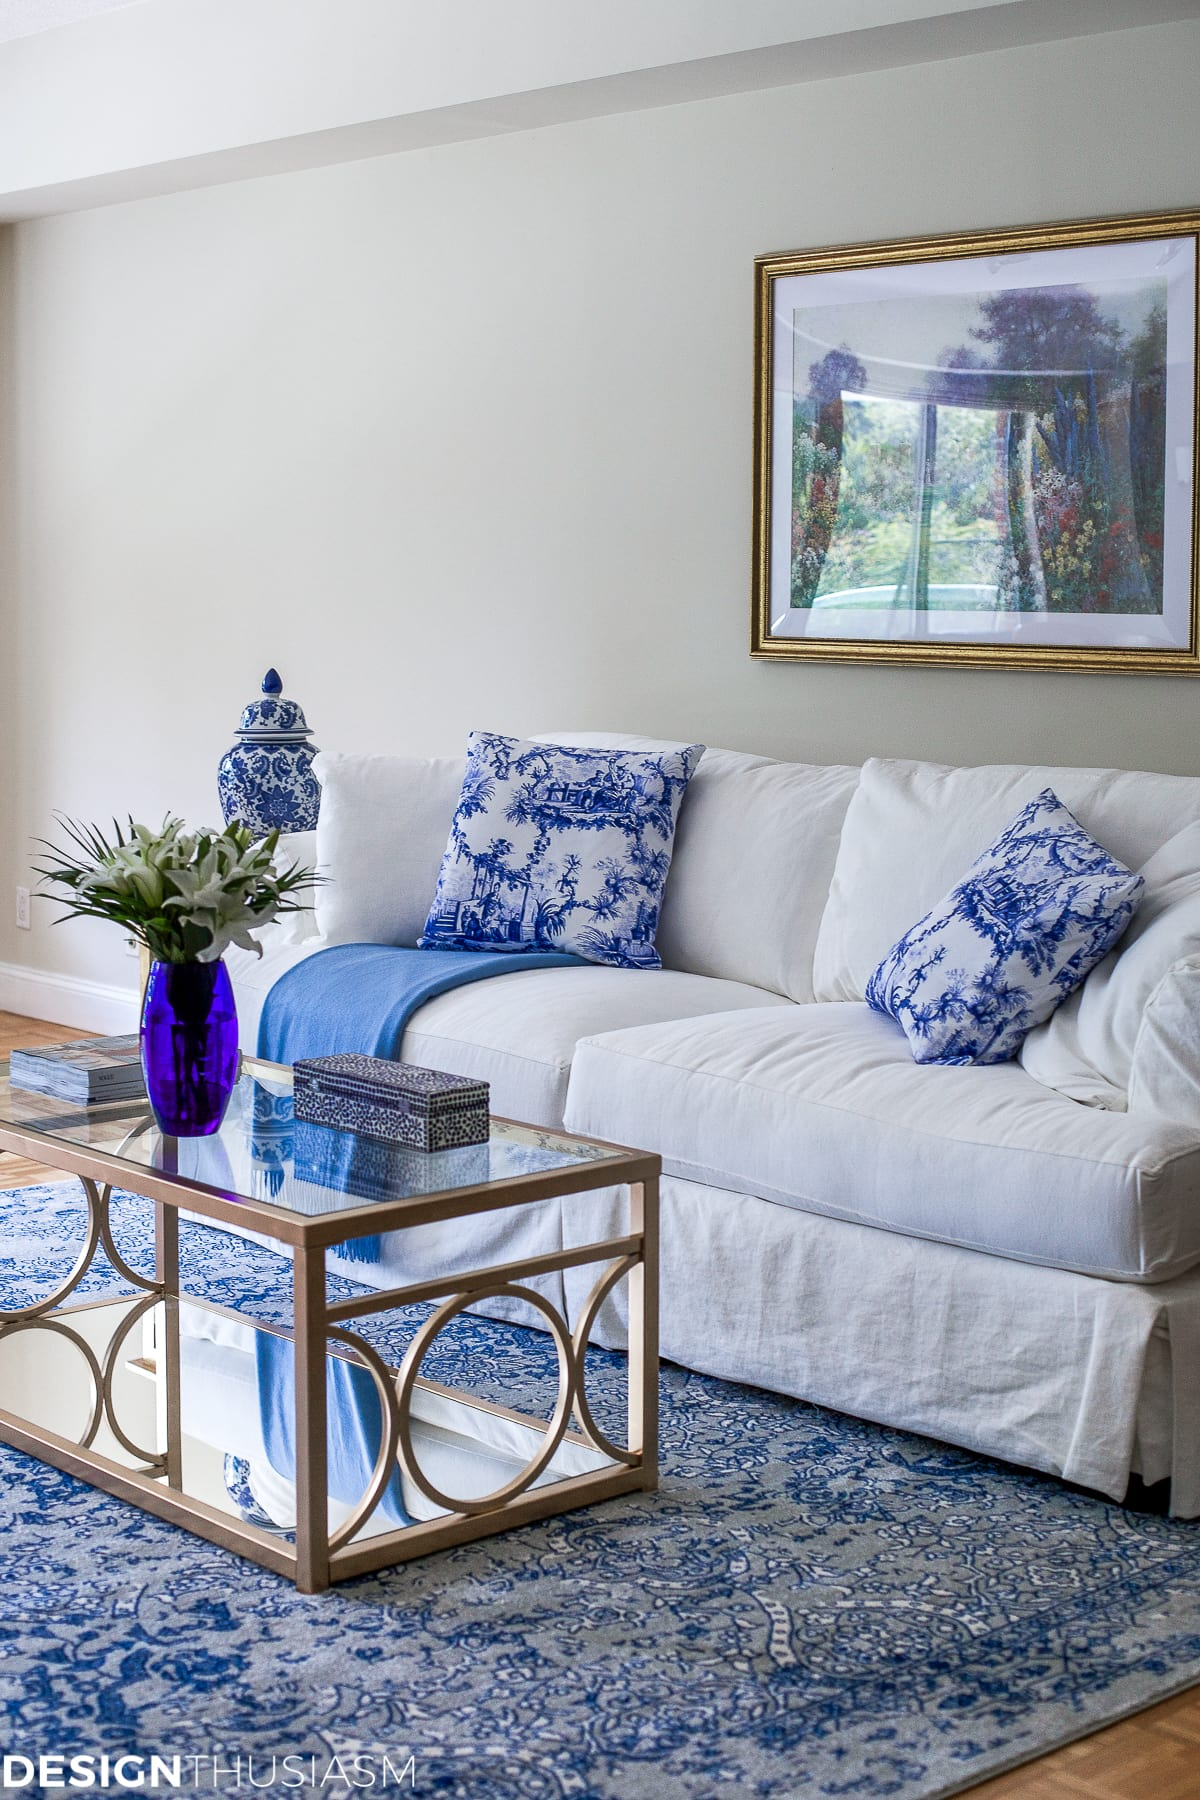 Blue and White Decor | Maintaining Your Style and Downsizing Your Home - designthusiasm